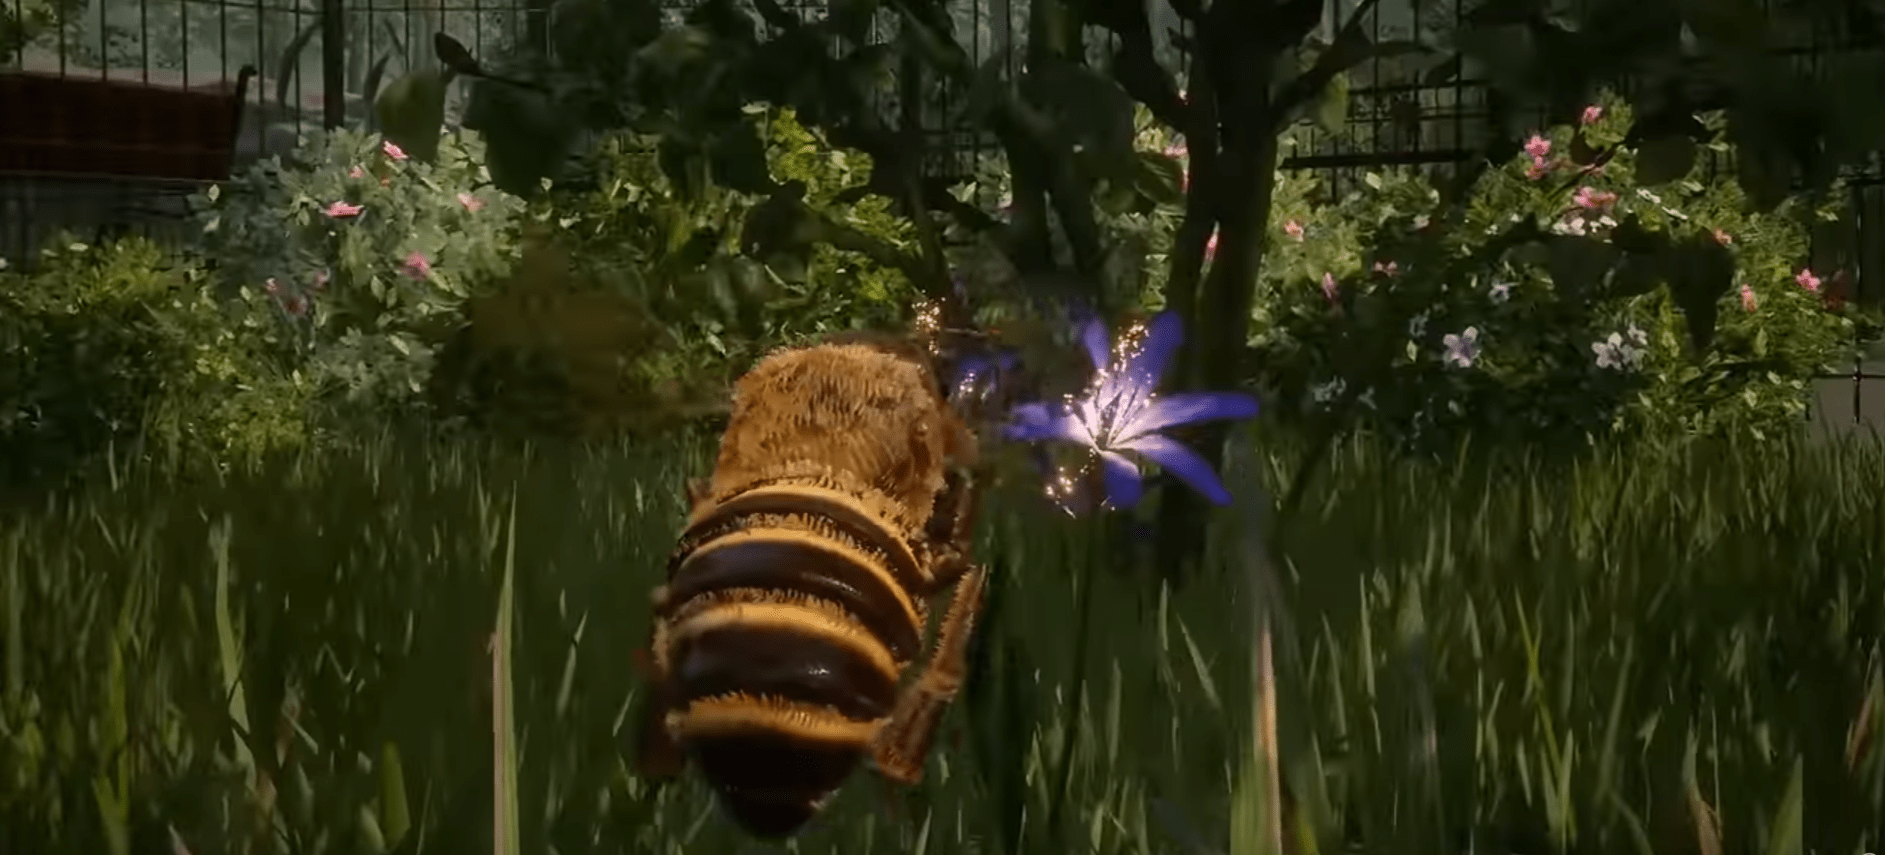 Bee Simulator – Gamers Will See The World Through The Eyes Of A Bee, Coming This Week To All Platforms